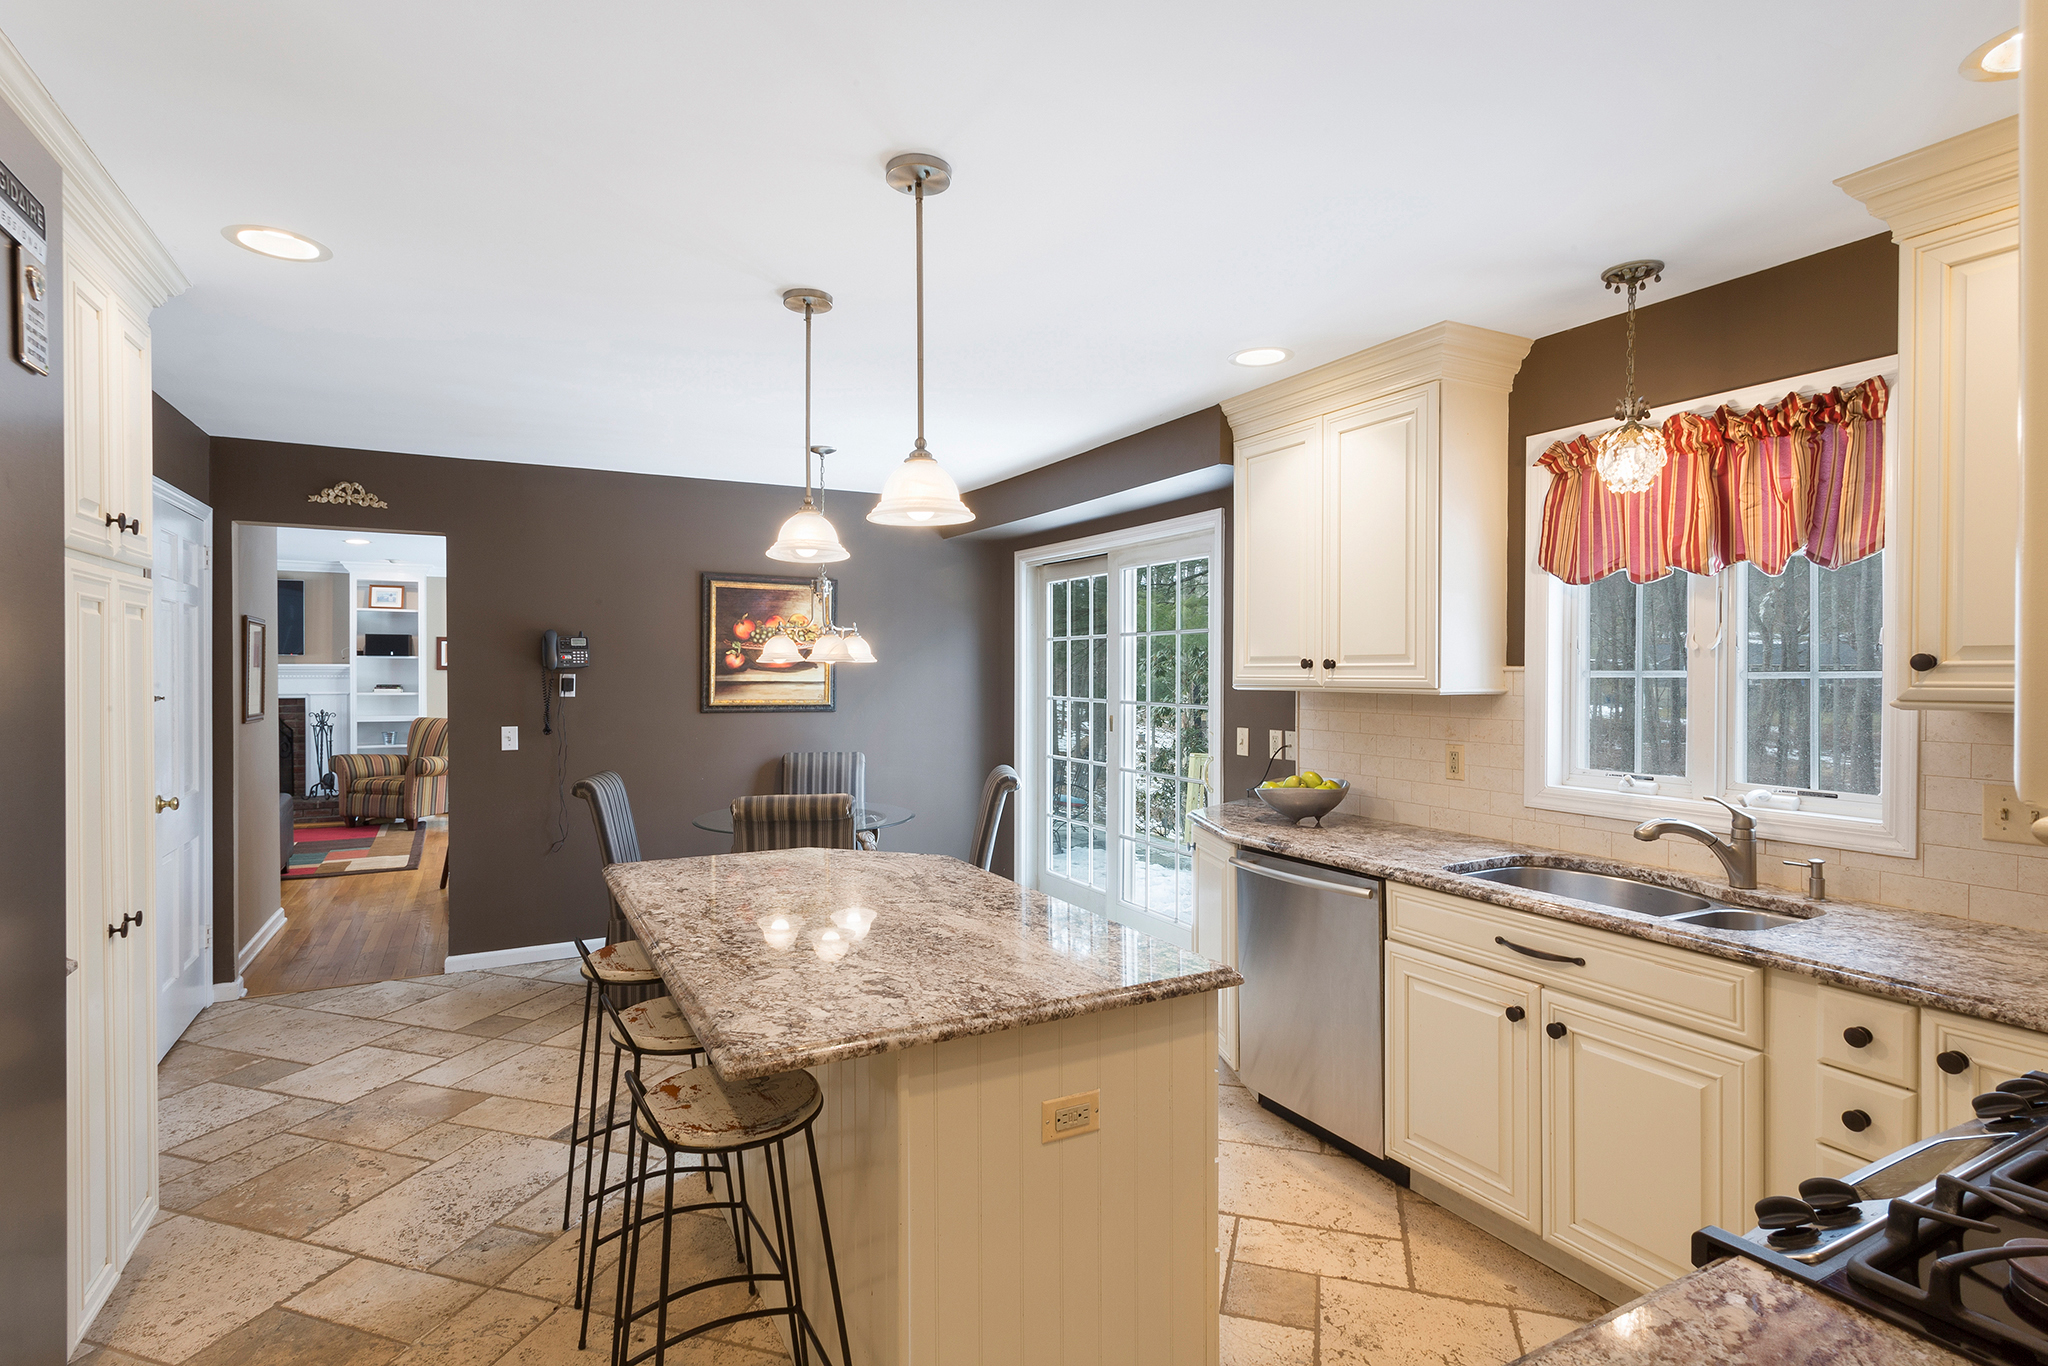 07 14 Keats Road Tewksbury Township — Kitchen 2